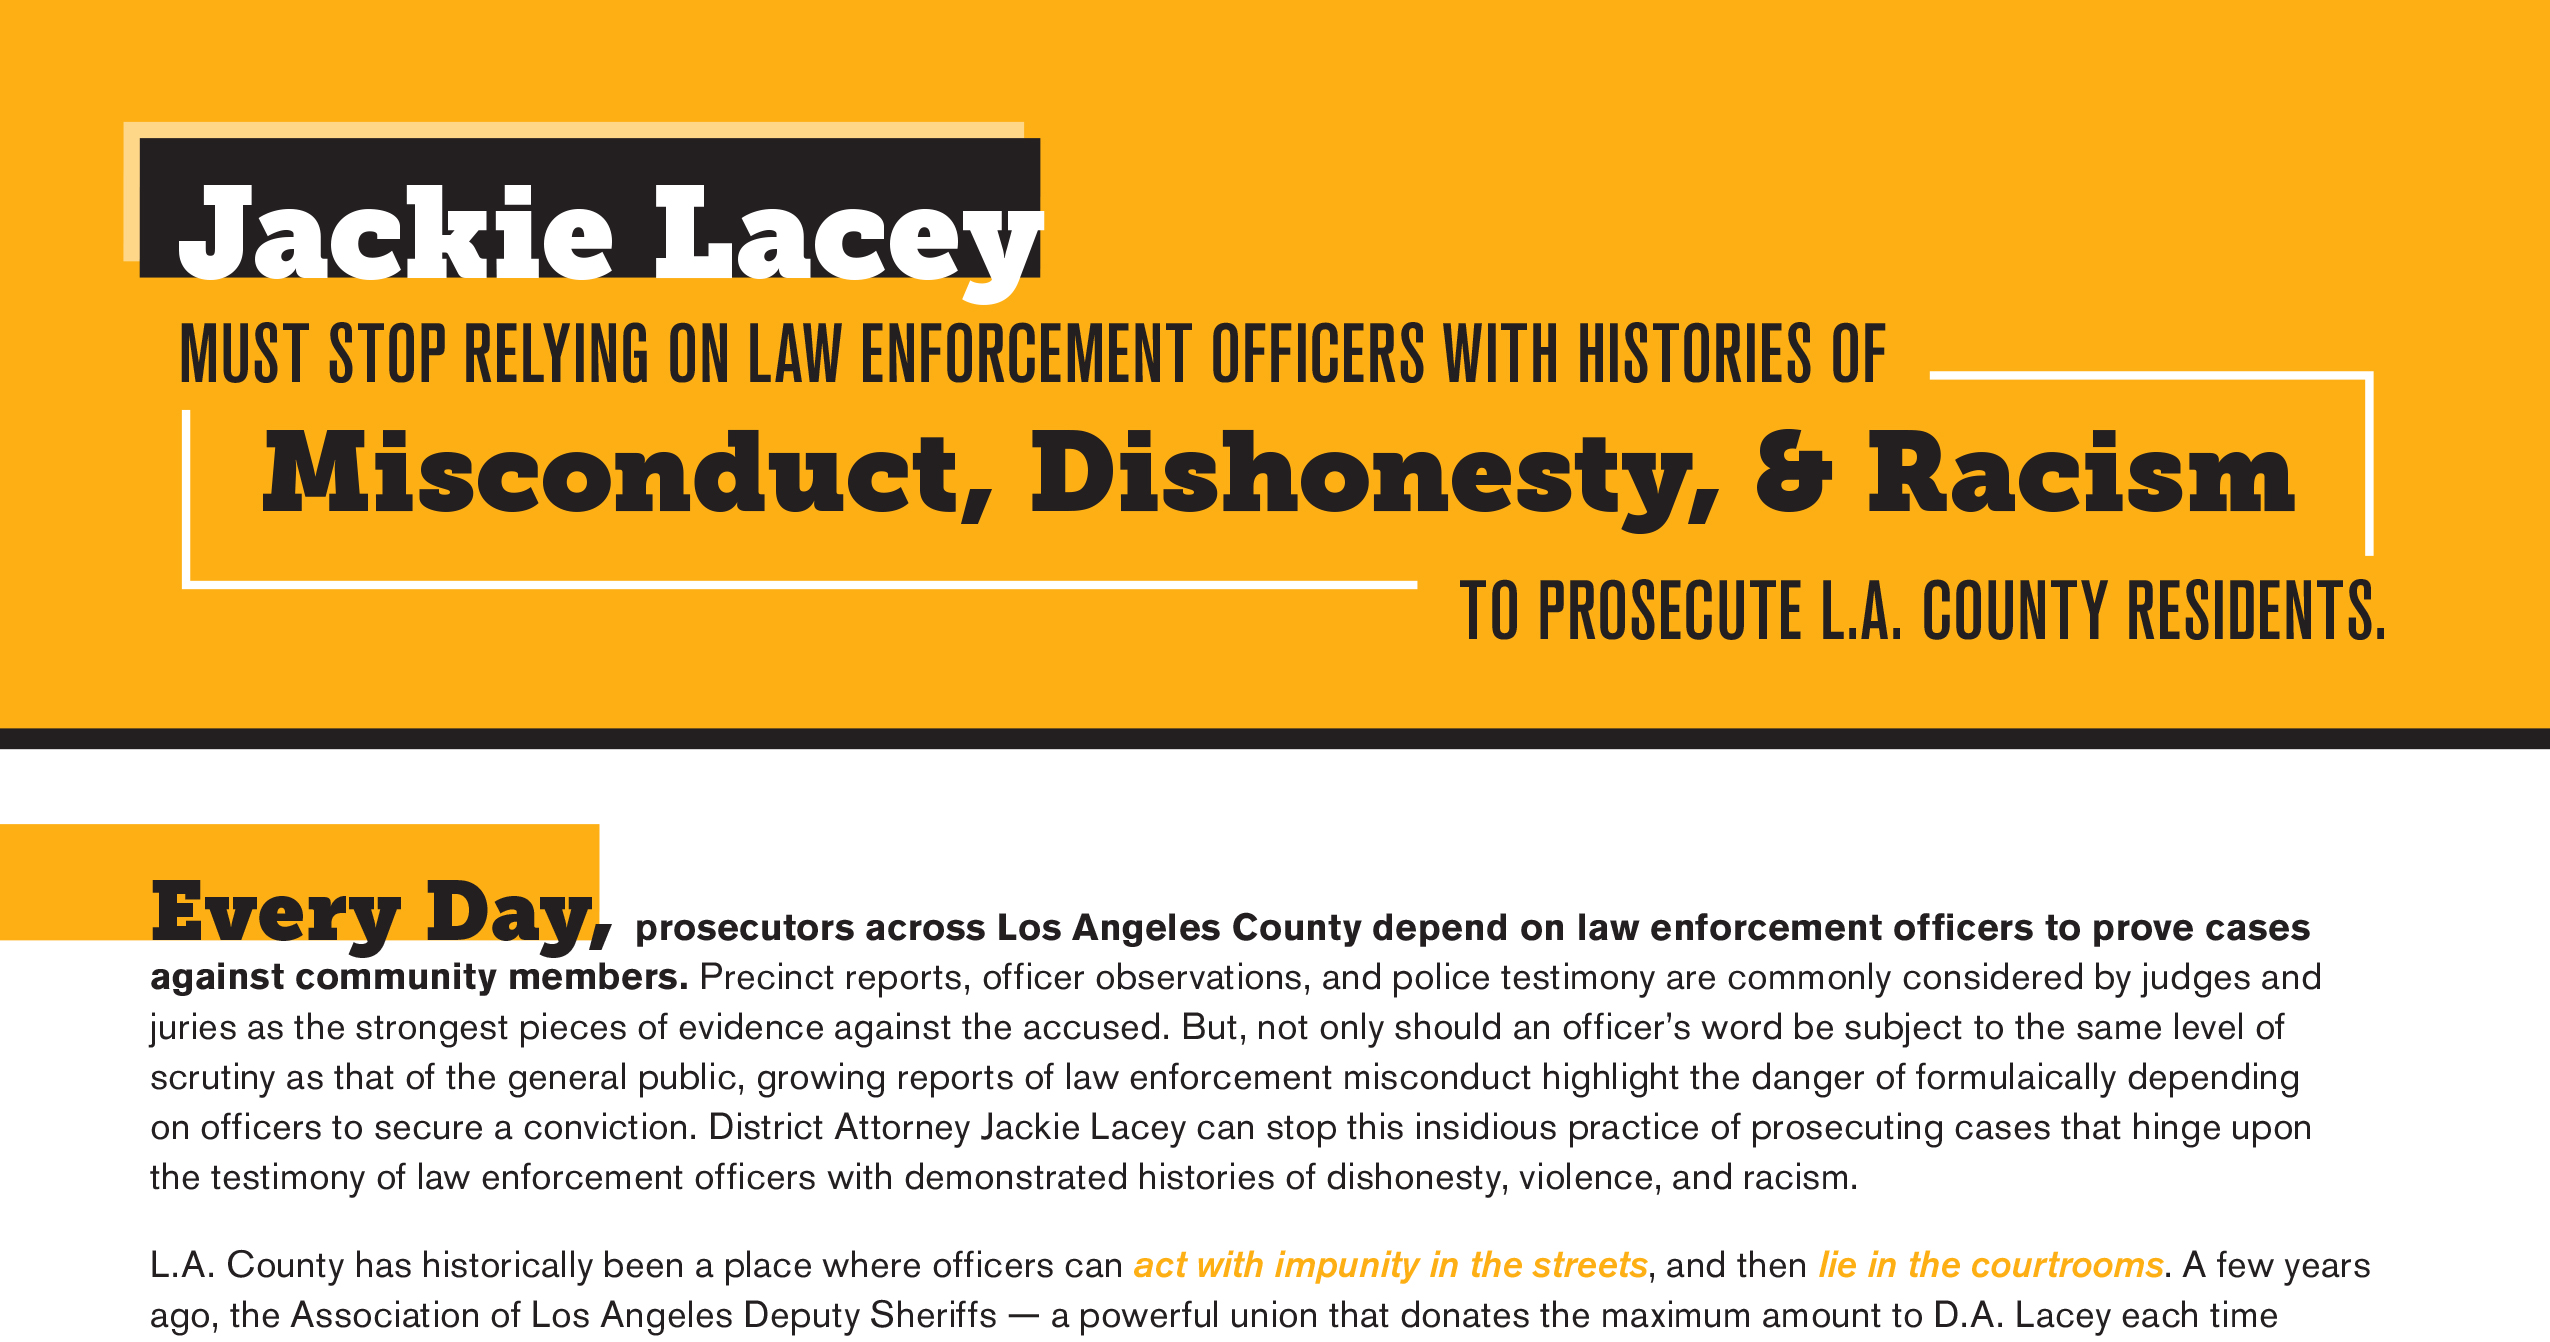 Open Letter: Jackie Lacey Must Stop Relying on Law Enforcement Officers with Histories of Misconduct, Dishonesty, & Racism to Prosecute L.A. County Residents